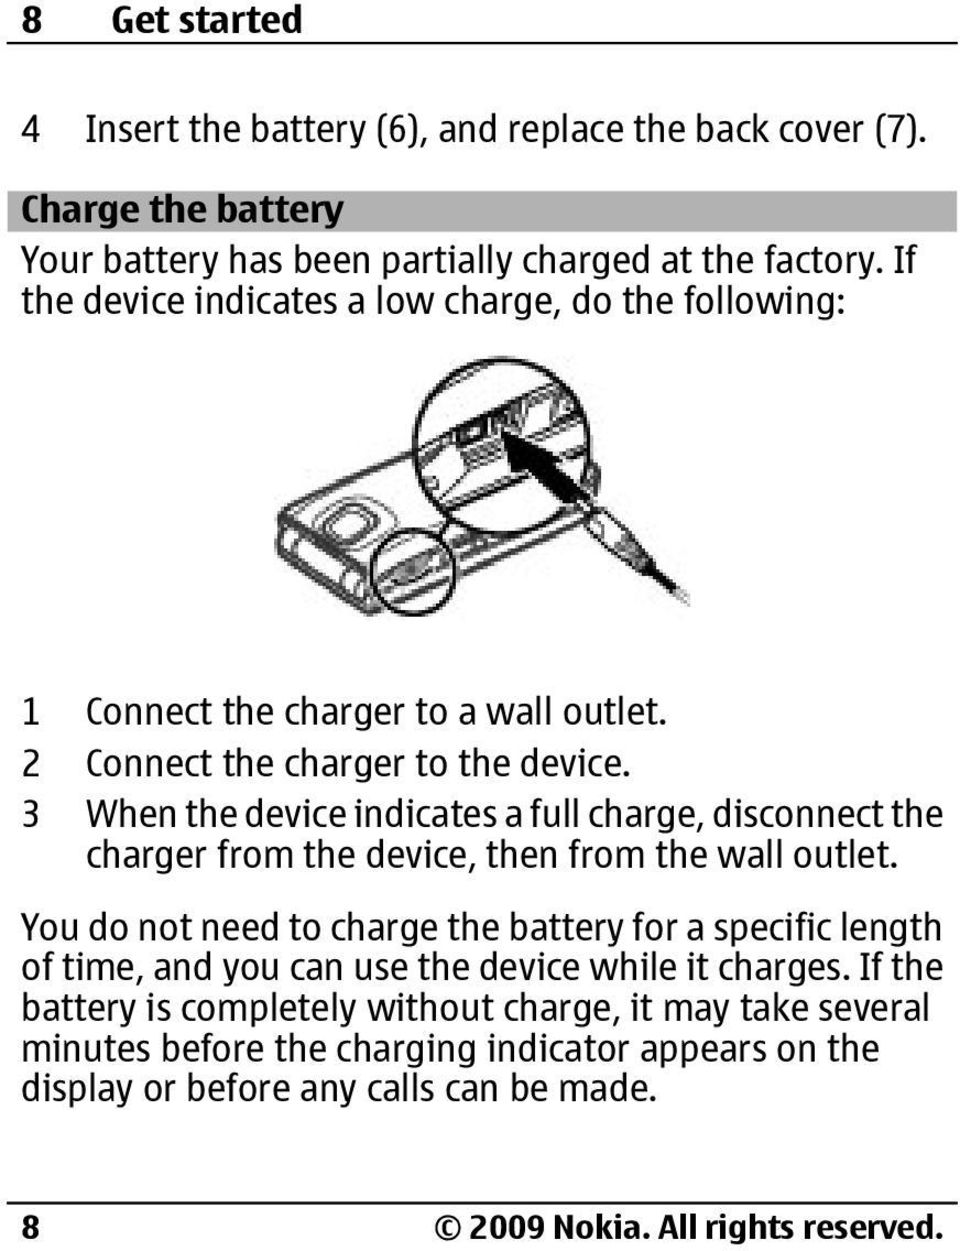 3 When the device indicates a full charge, disconnect the charger from the device, then from the wall outlet.